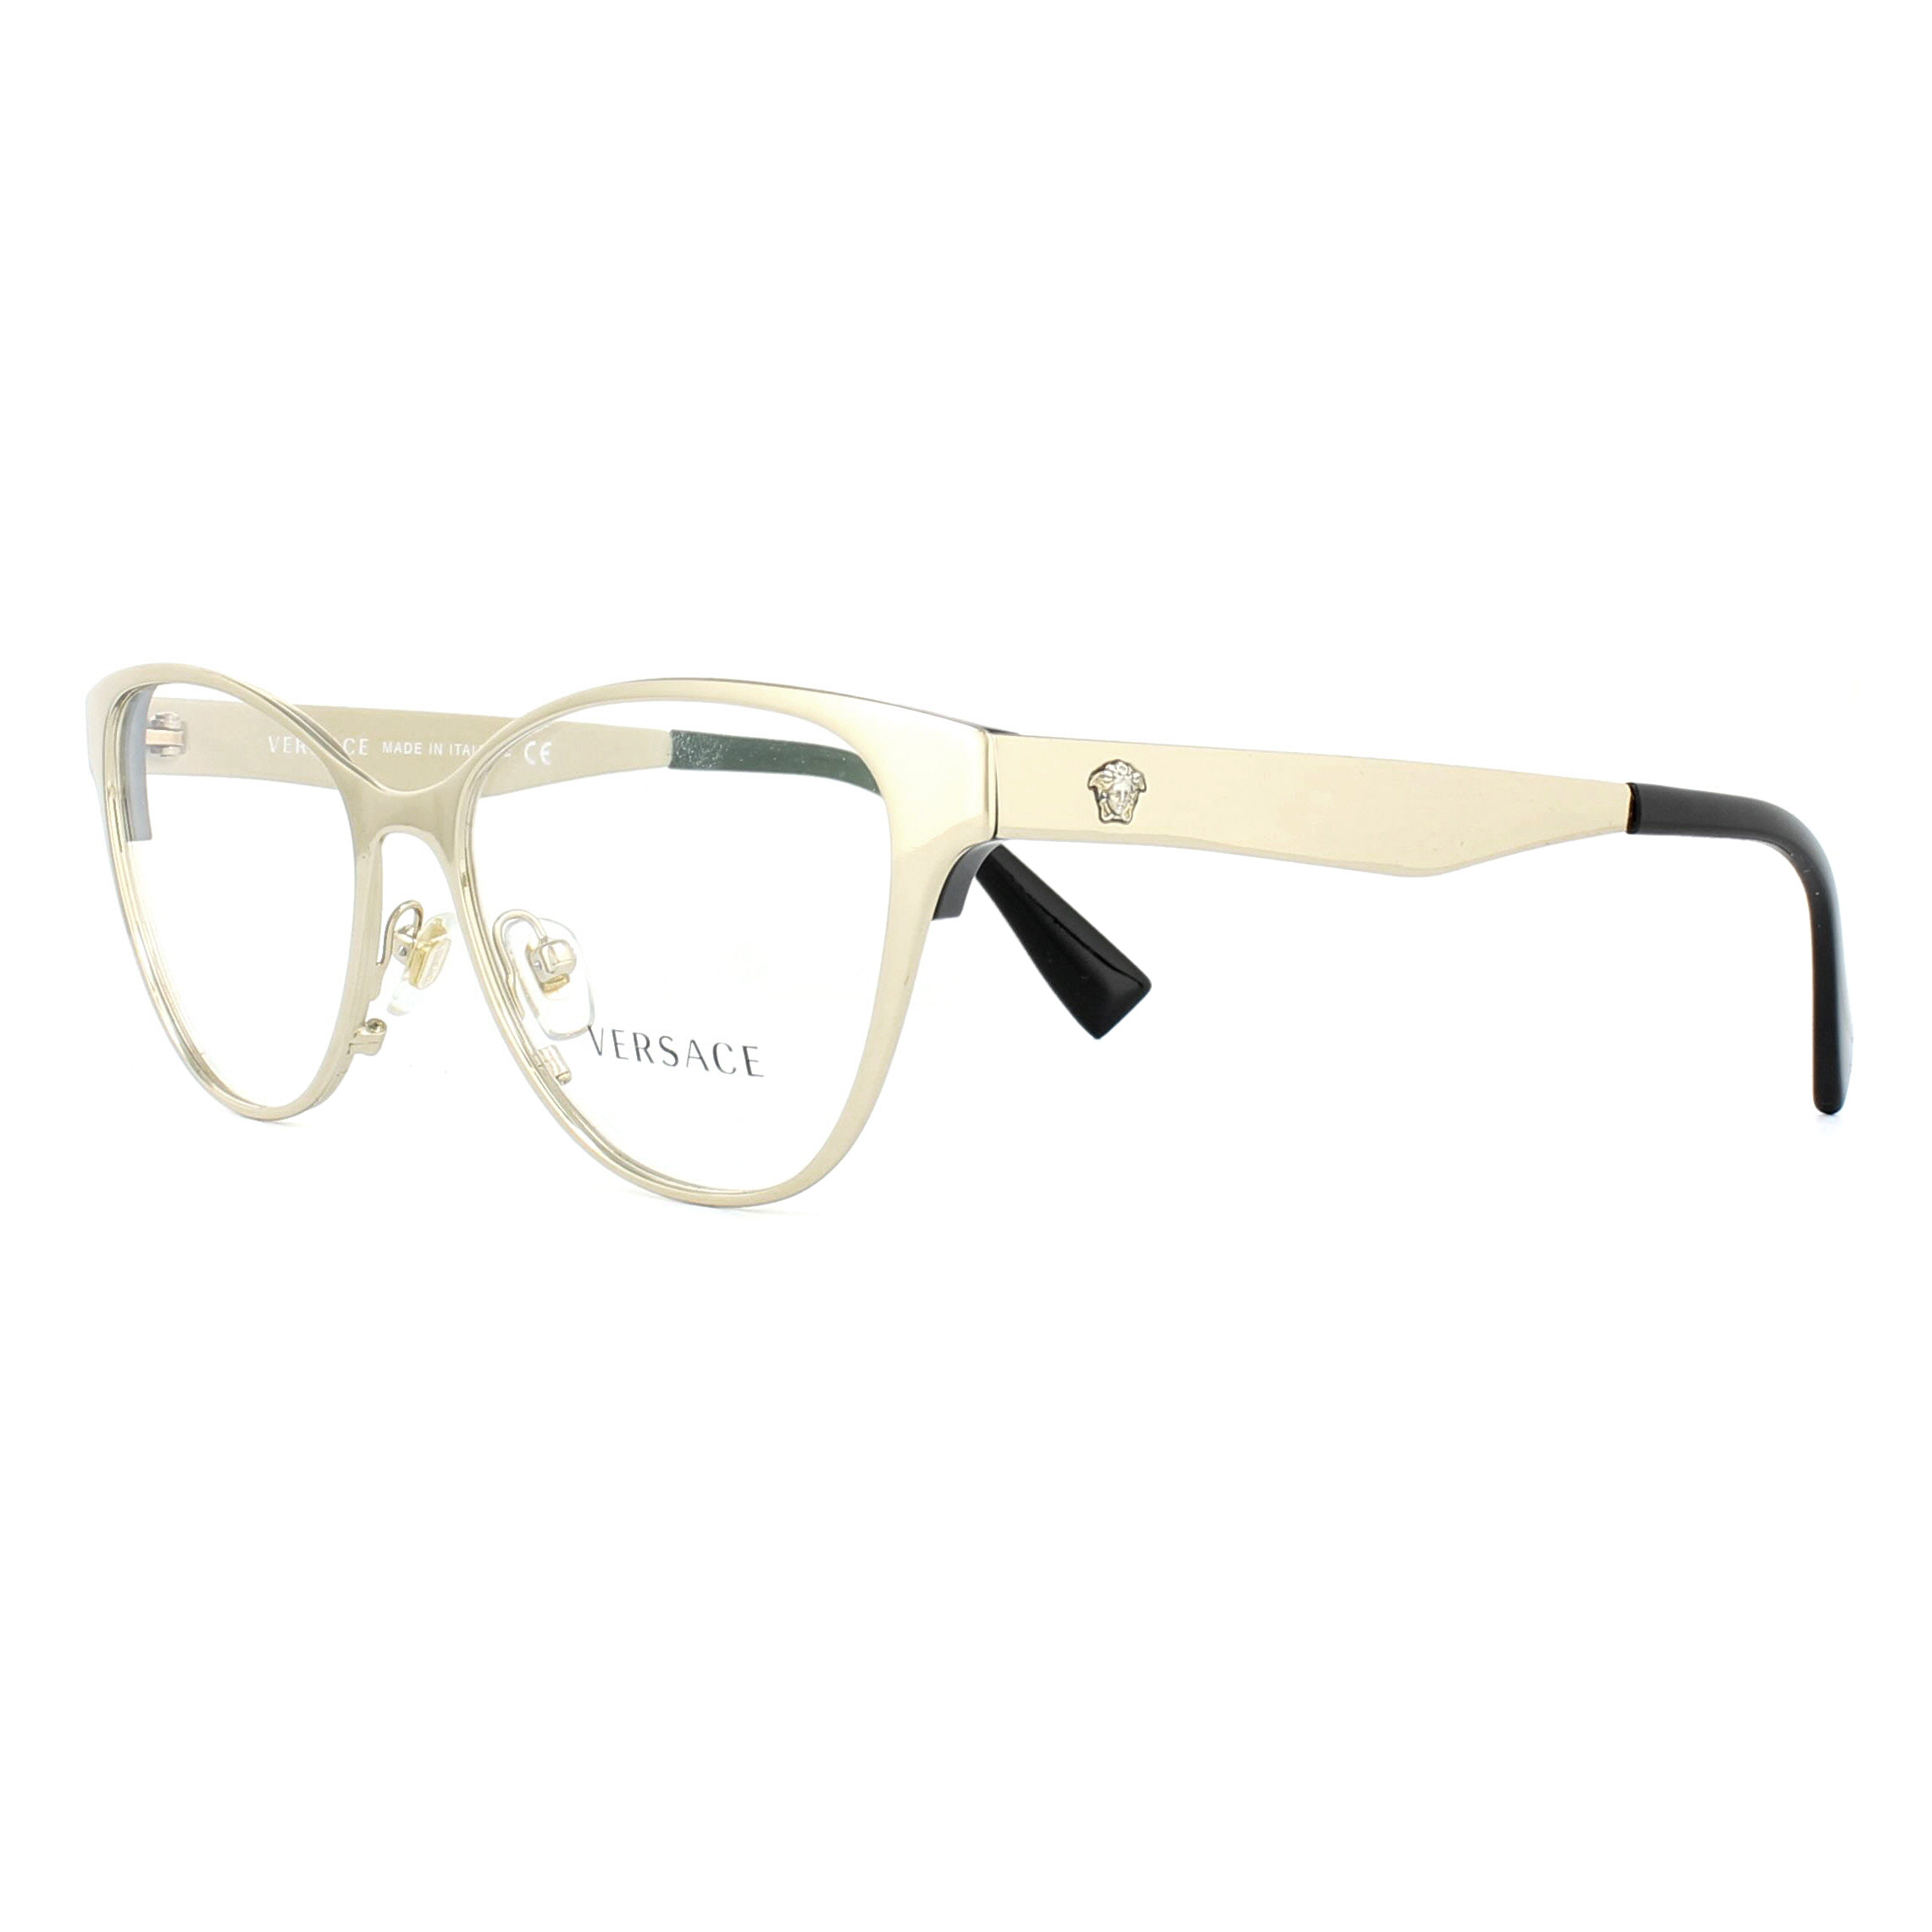 Versace Glasses Frames 1245 1252 Pale Gold and Black 53mm Womens ...